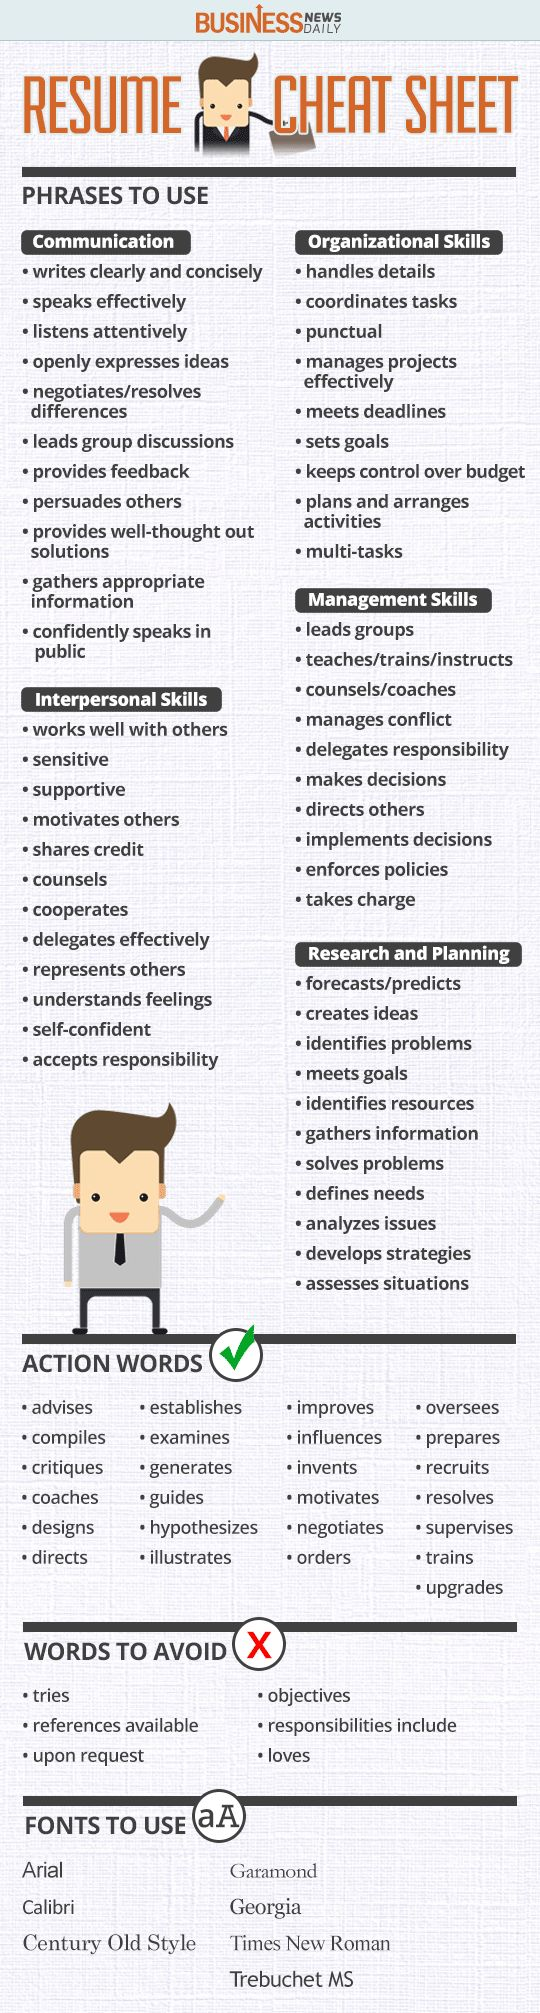 Opposenewapstandardsus  Stunning  Ideas About Resume On Pinterest  Cv Format Resume Cv And  With Glamorous Resume Cheat Sheet Infographic Andrews Almost Done With A Complete Unit On Employment Which With Agreeable Mac Resume Templates Also Accounting Resume Skills In Addition Ms Word Resume Templates And Teaching Resume Samples As Well As Executive Resume Writing Services Additionally Business Analyst Resumes From Pinterestcom With Opposenewapstandardsus  Glamorous  Ideas About Resume On Pinterest  Cv Format Resume Cv And  With Agreeable Resume Cheat Sheet Infographic Andrews Almost Done With A Complete Unit On Employment Which And Stunning Mac Resume Templates Also Accounting Resume Skills In Addition Ms Word Resume Templates From Pinterestcom